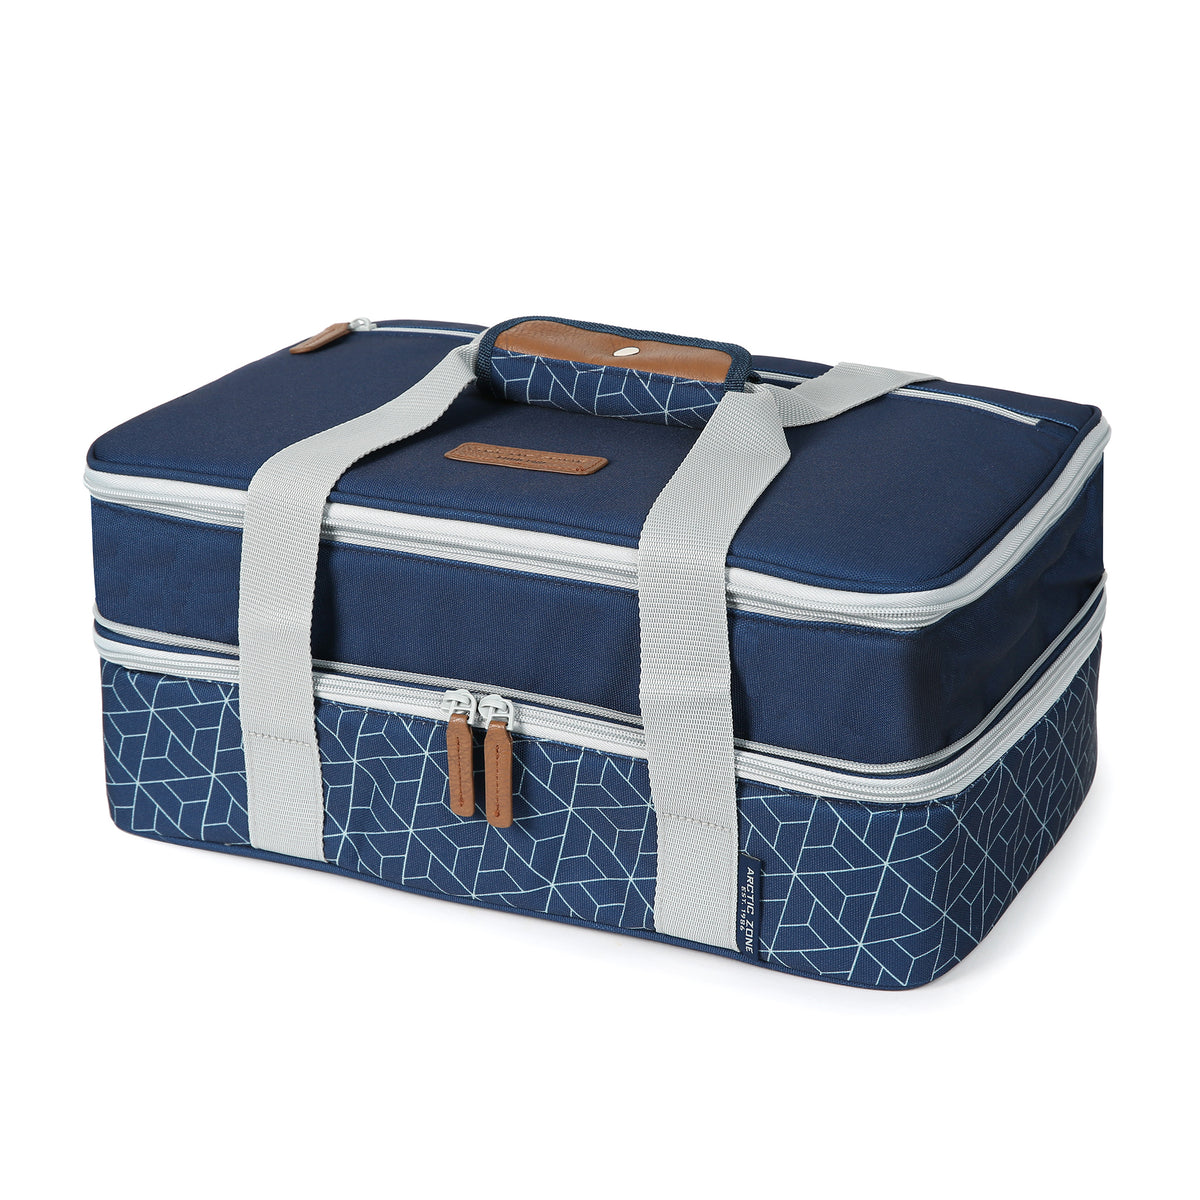 Arctic Zone® Food Pro Expandable Thermal Carrier - Navy - Front, expanded, closed